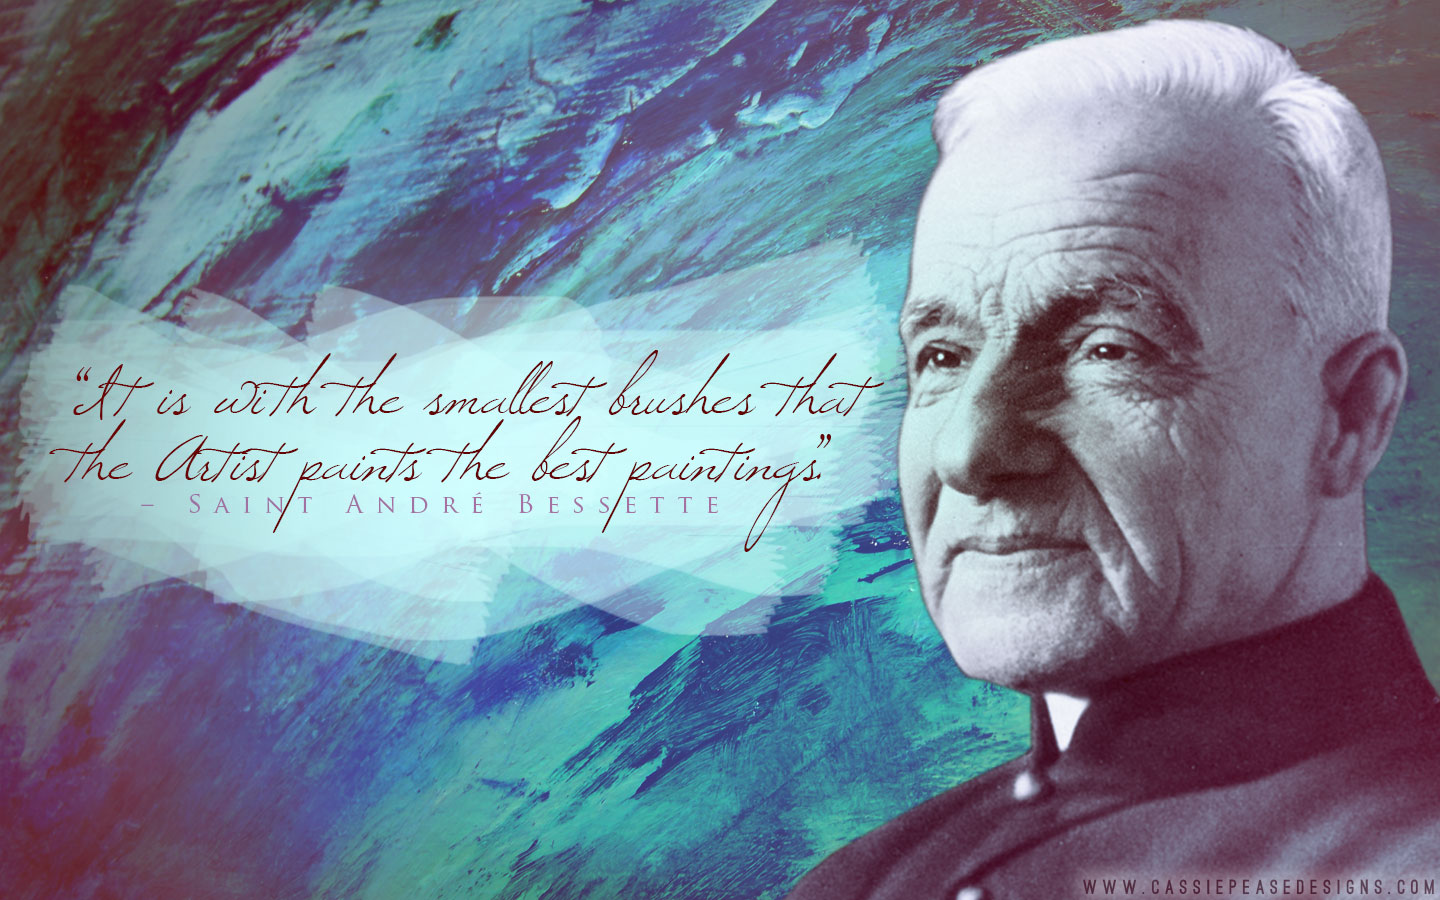 St. André Bessette Desktop Wallpaper